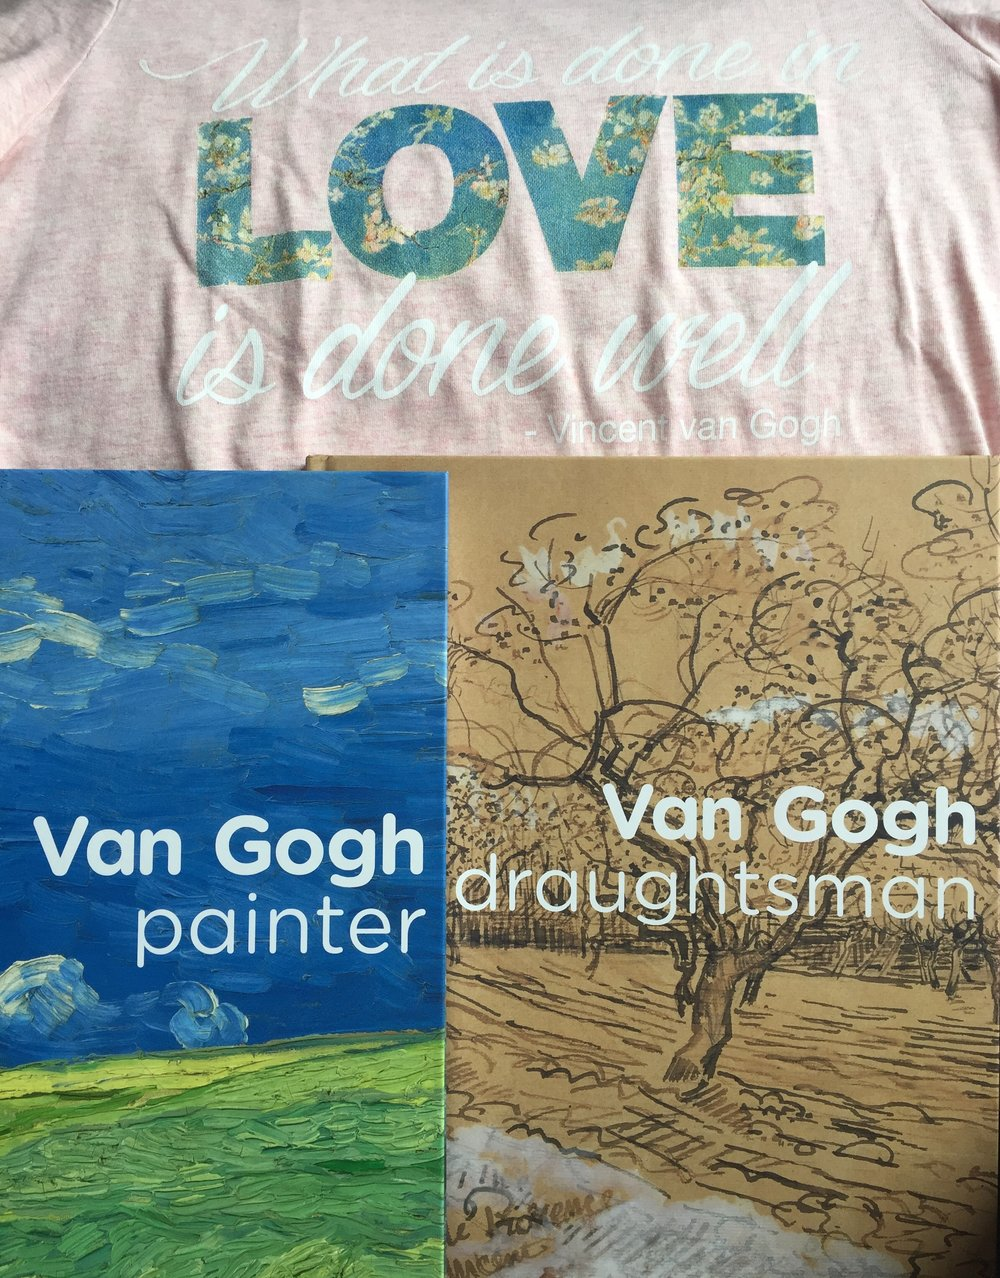 My purchases from the Van Gogh Museum.